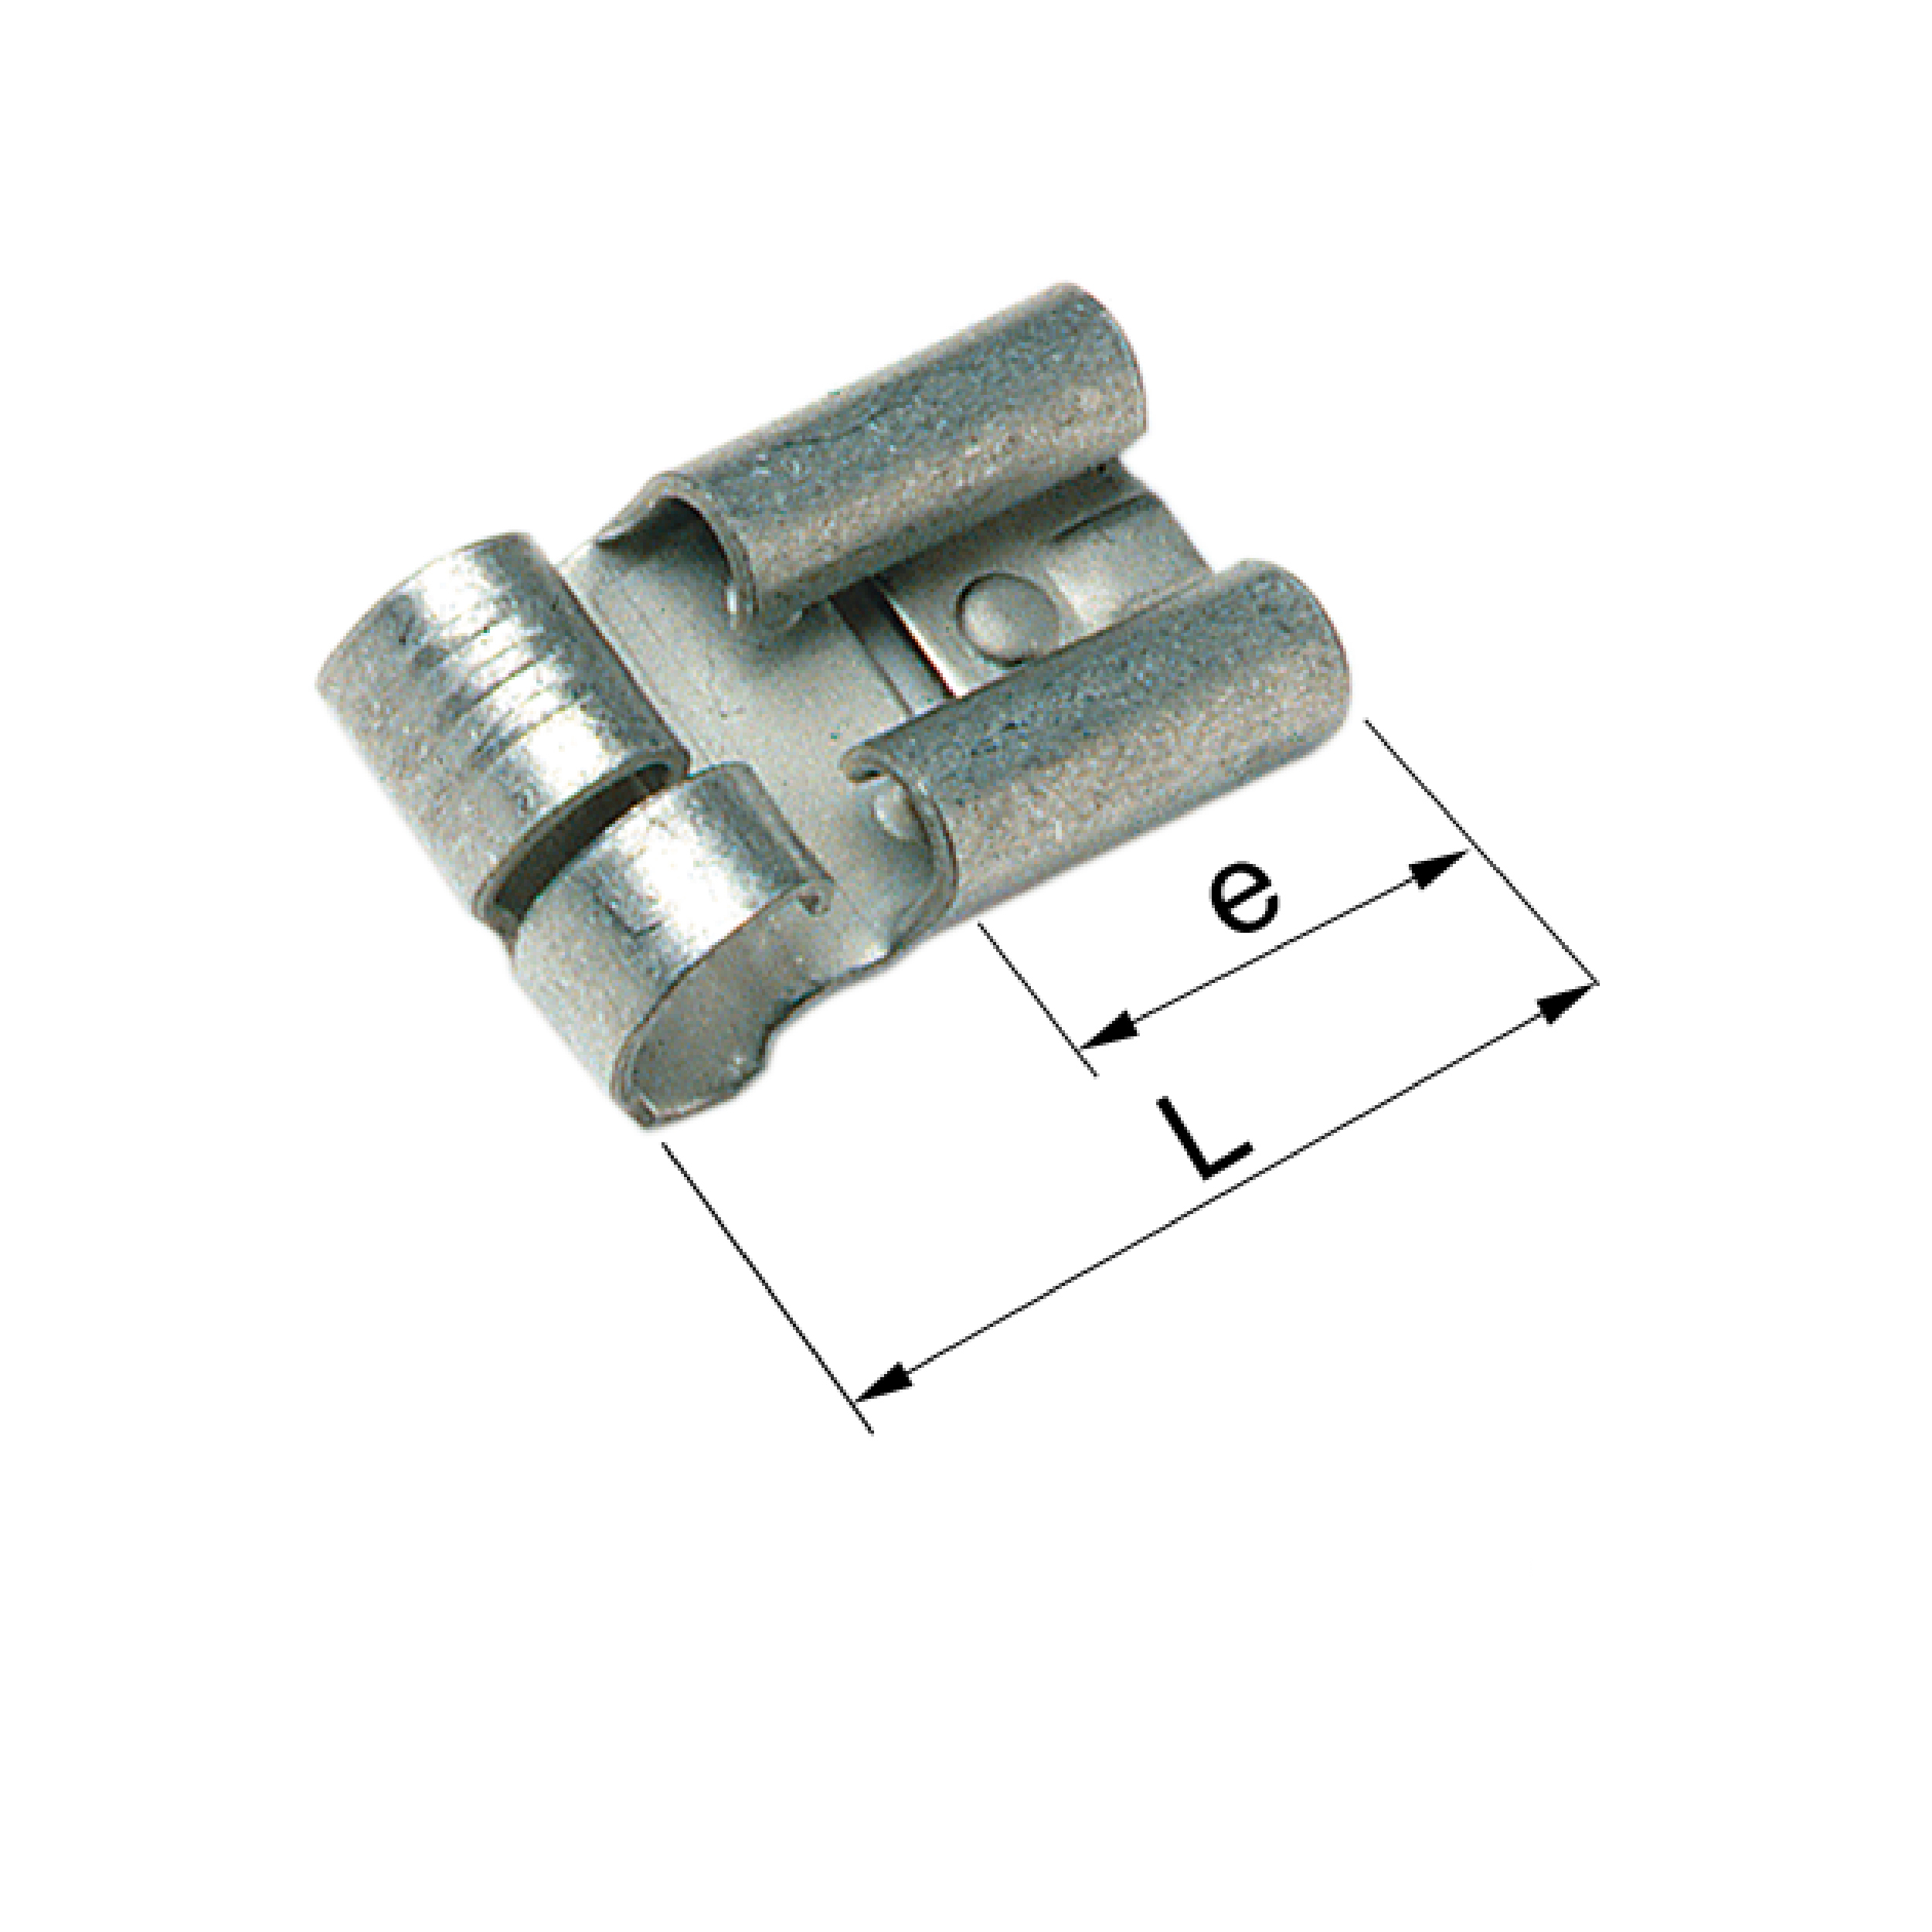 Elpress Un-Insulated Receptacle 90° 0.5-1.5mm²